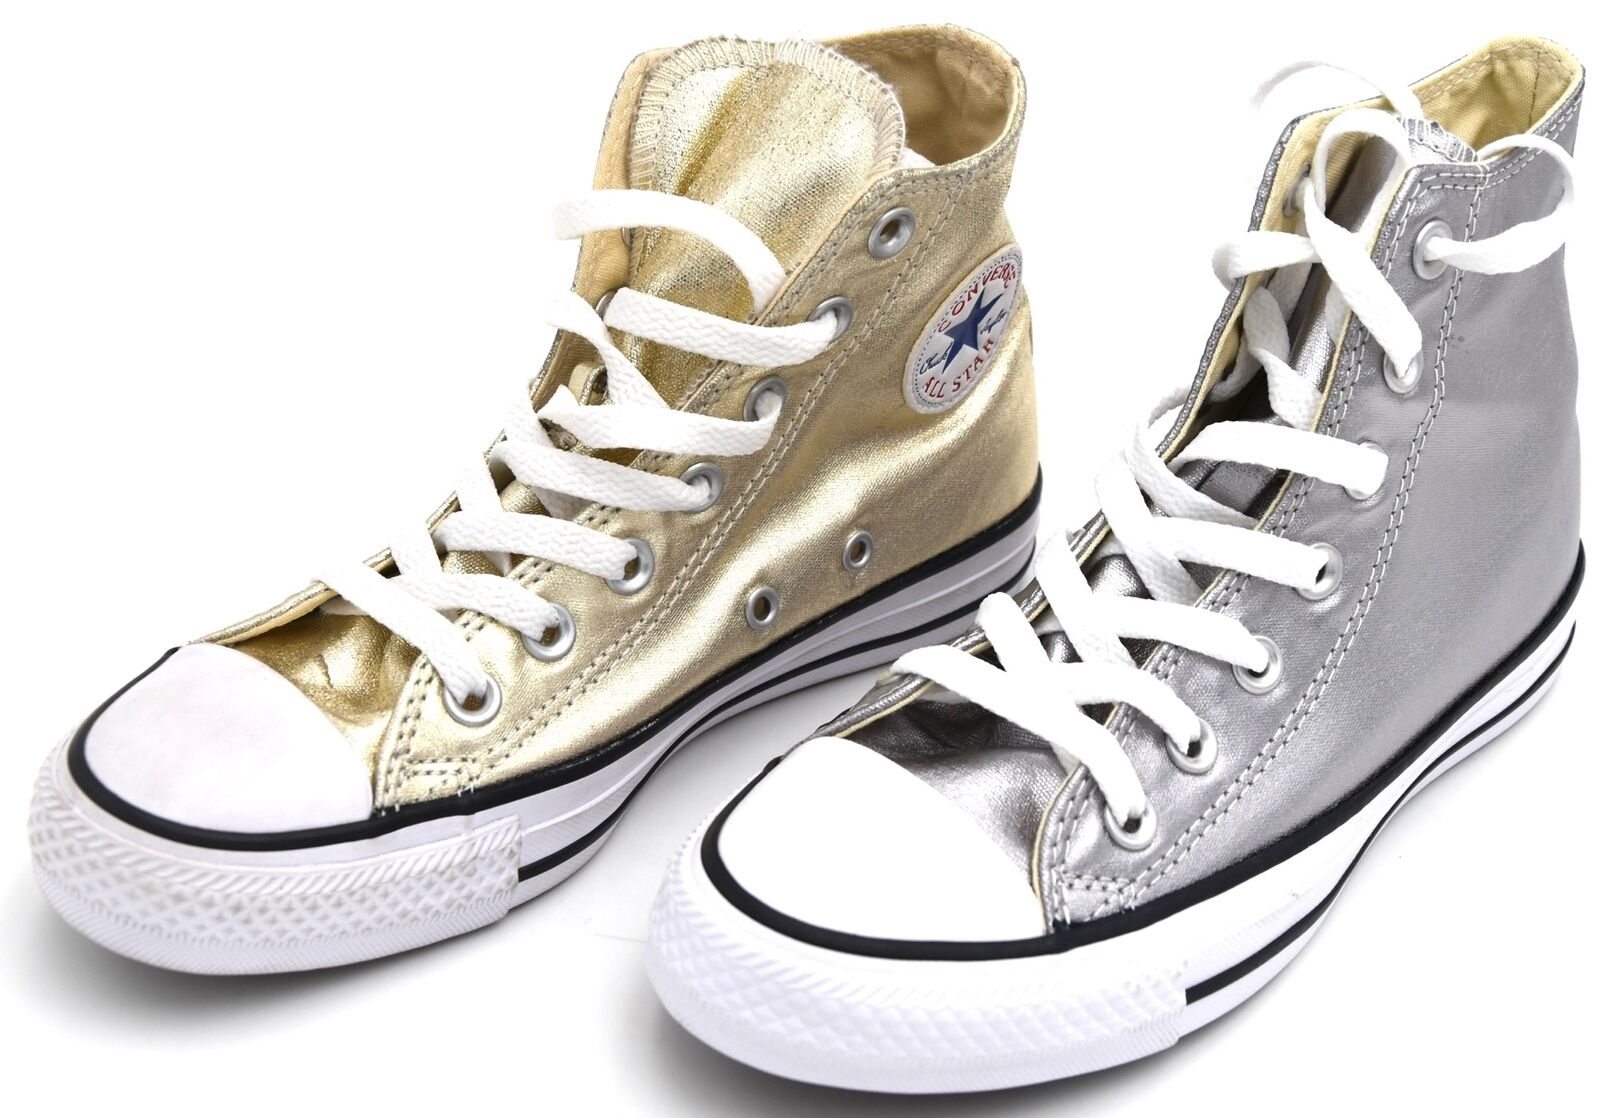 CONVERSE ALL STAR WOMAN SNEAKER SHOES CASUAL FAUX LEATHER 153177C 153178C CTASHI